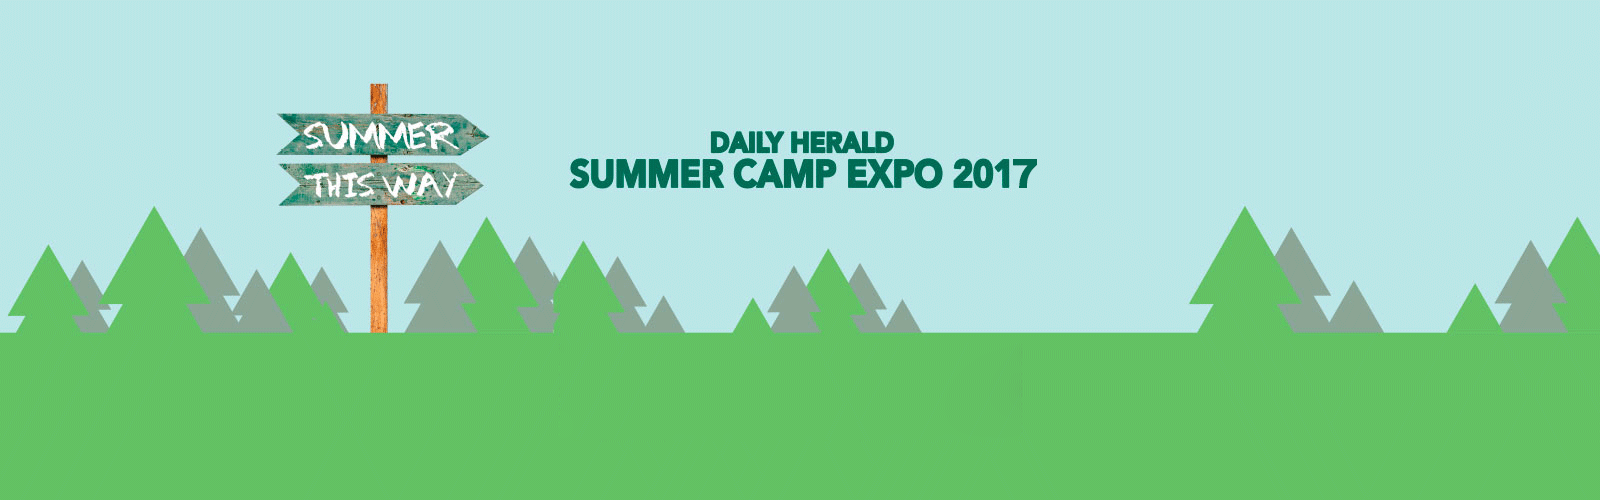 Summer Camp Expo